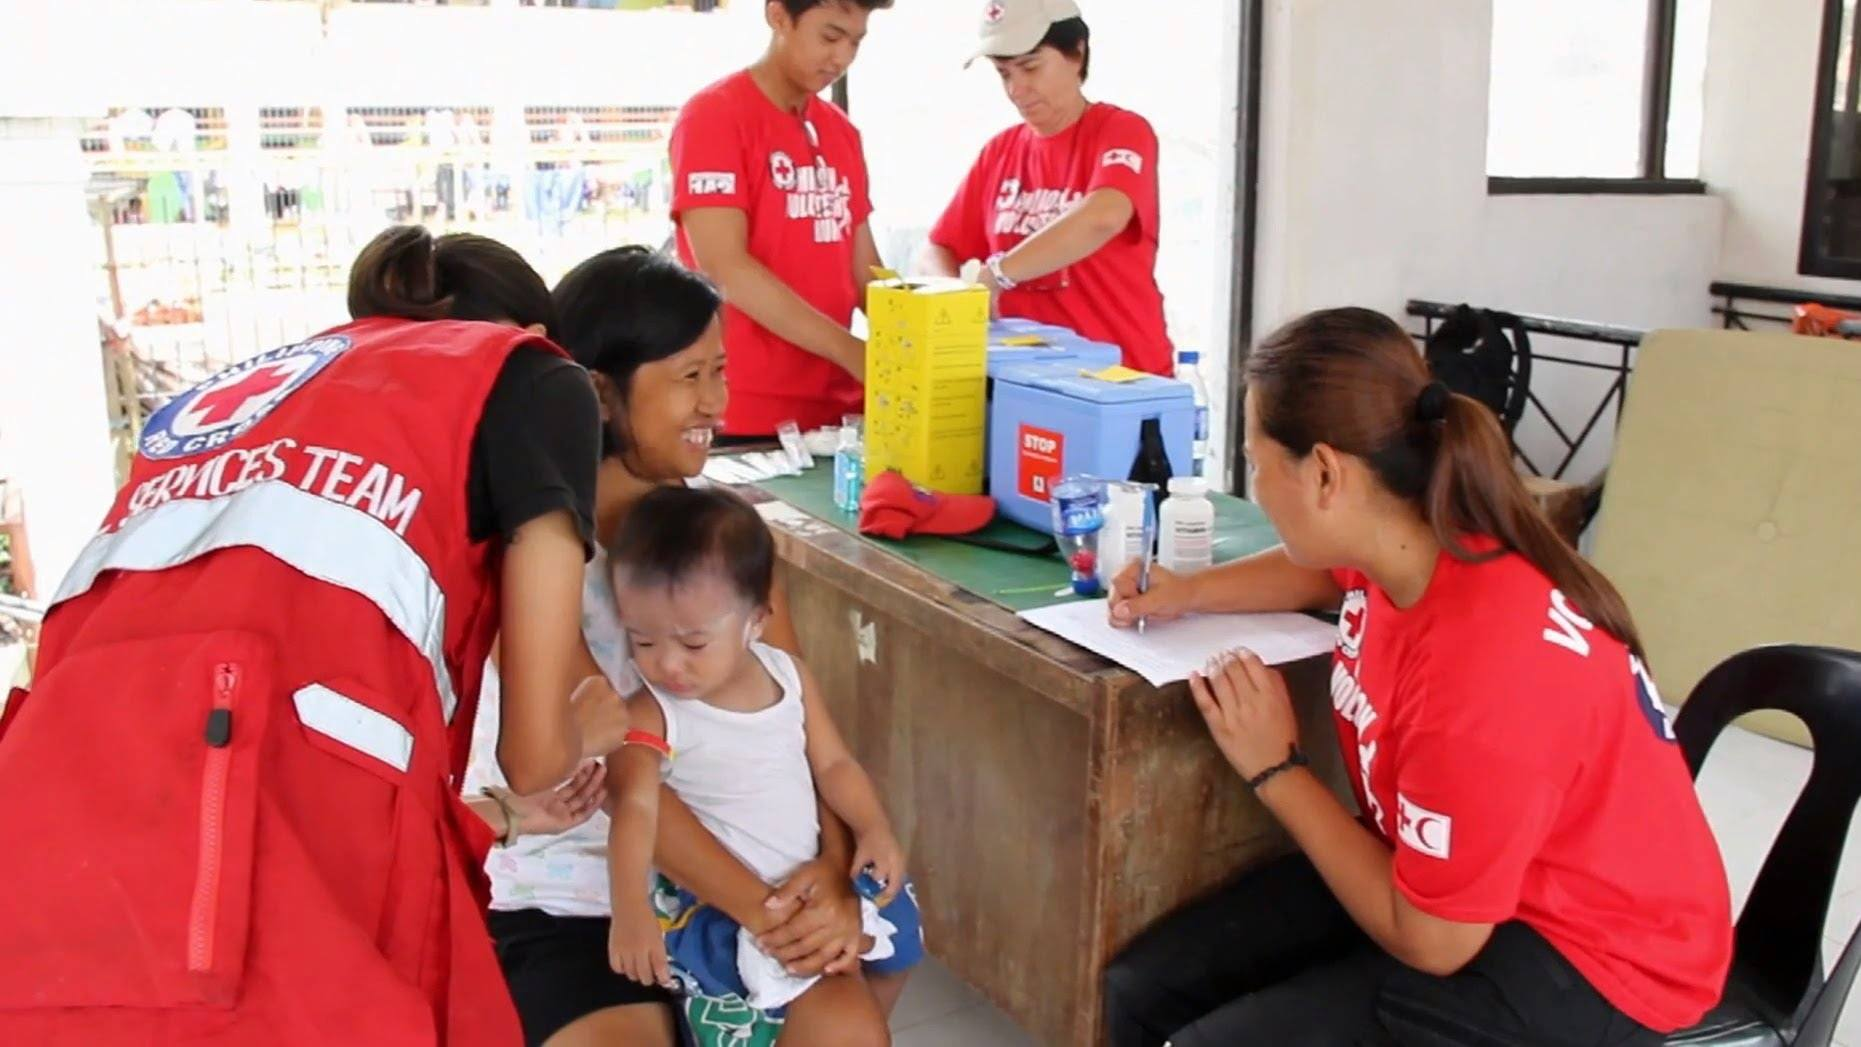 No Polio in the Philippines Since 1993, But Mass Polio Vaccination Program Targeted for 500,000 Typhoon Victims Under Age 5